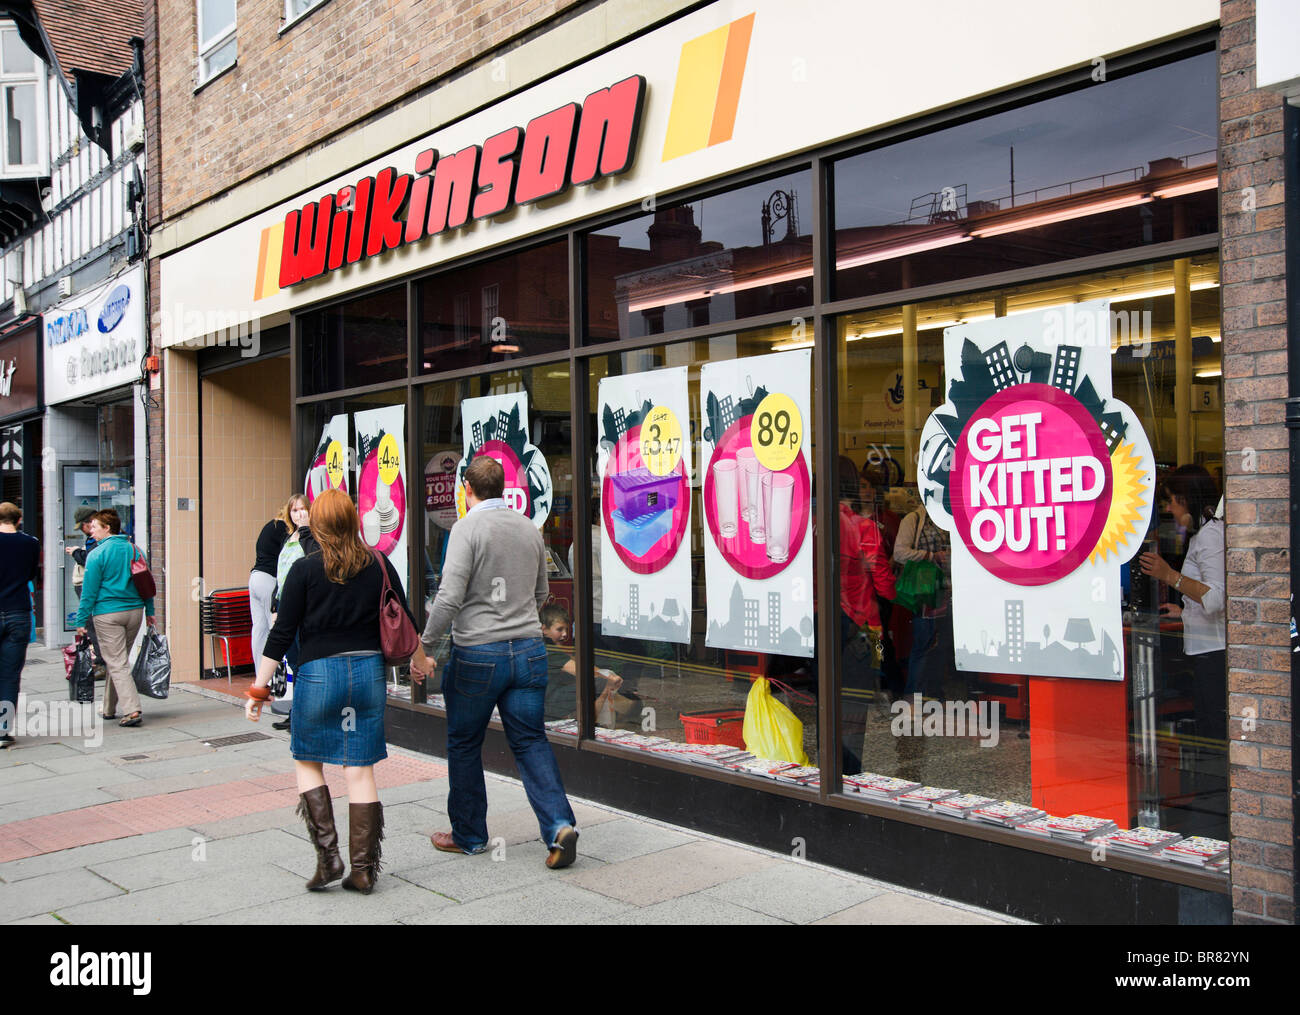 Wilkinson discount store in Chester town centre, Cheshire, England, UK - Stock Image